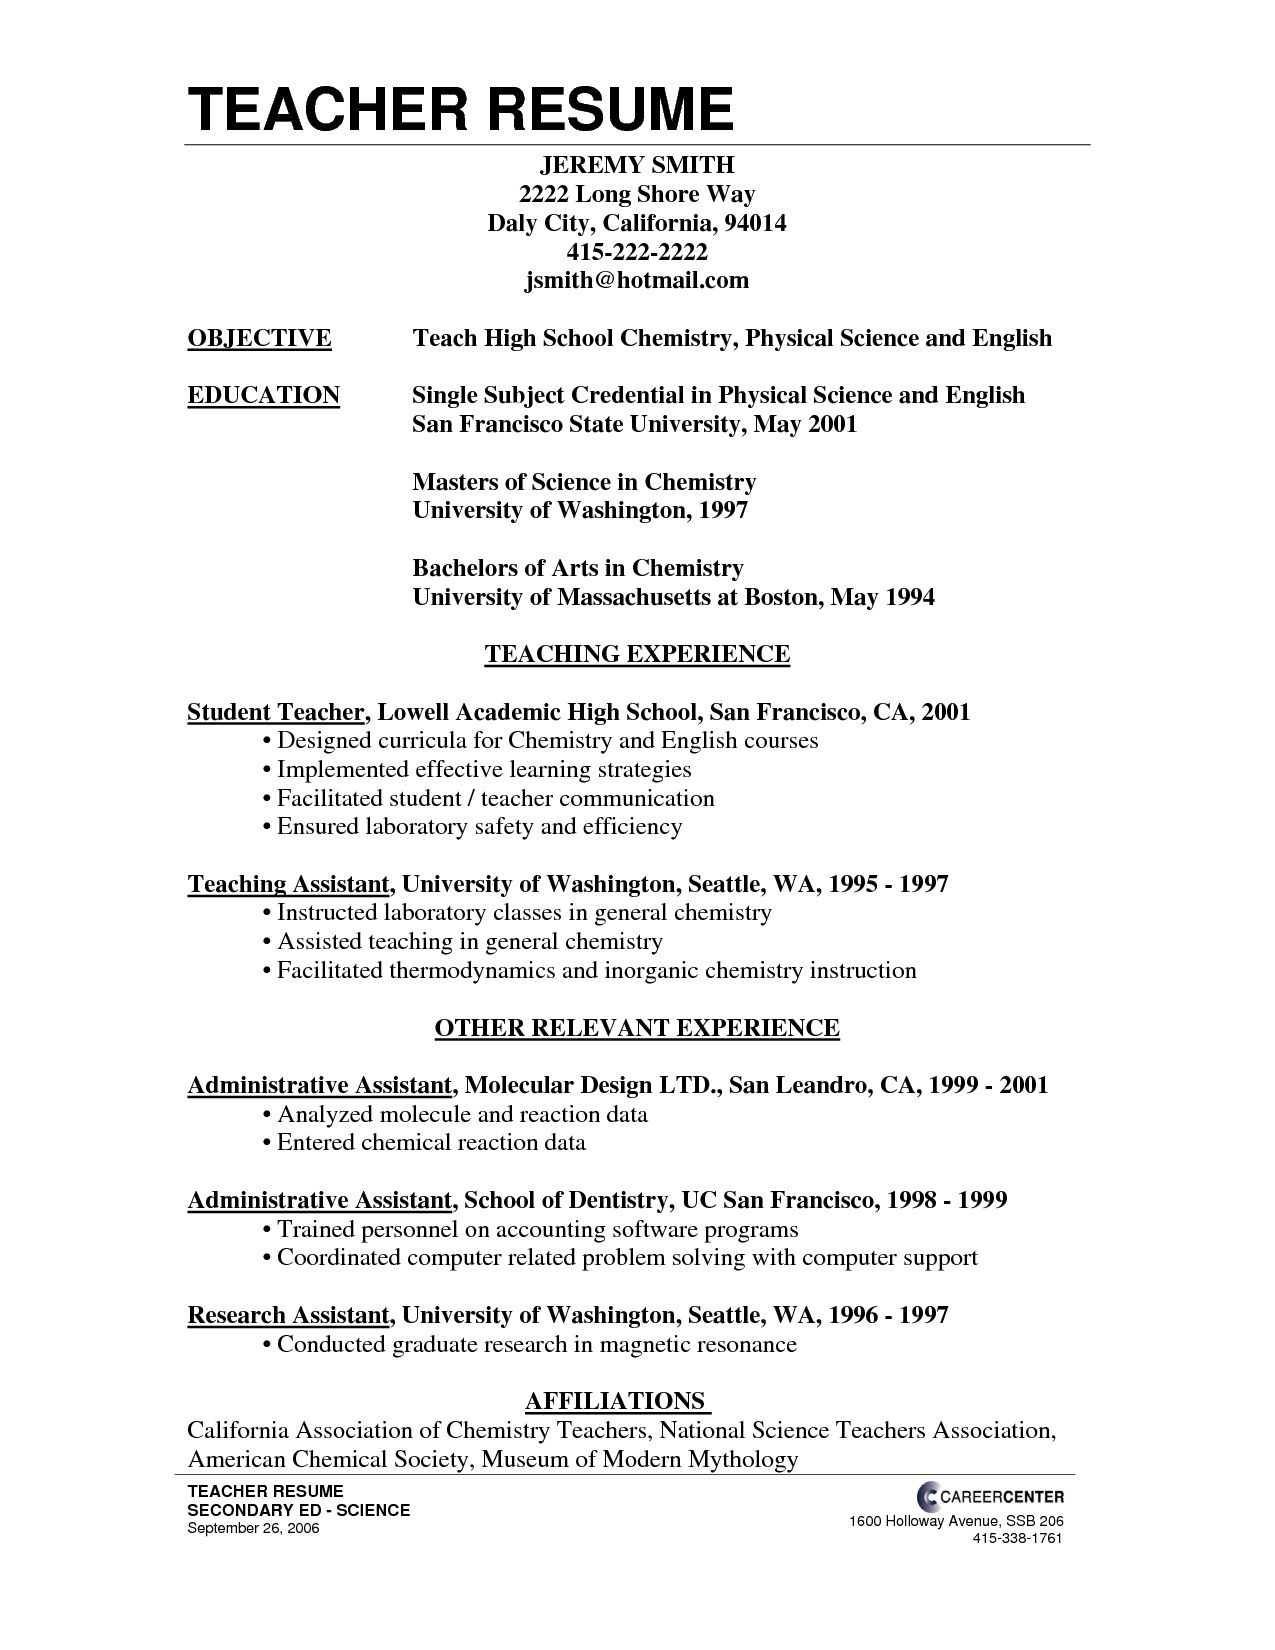 Resume Template Education High School Teacher Resume  Getha Krisha  Pinterest  Teacher